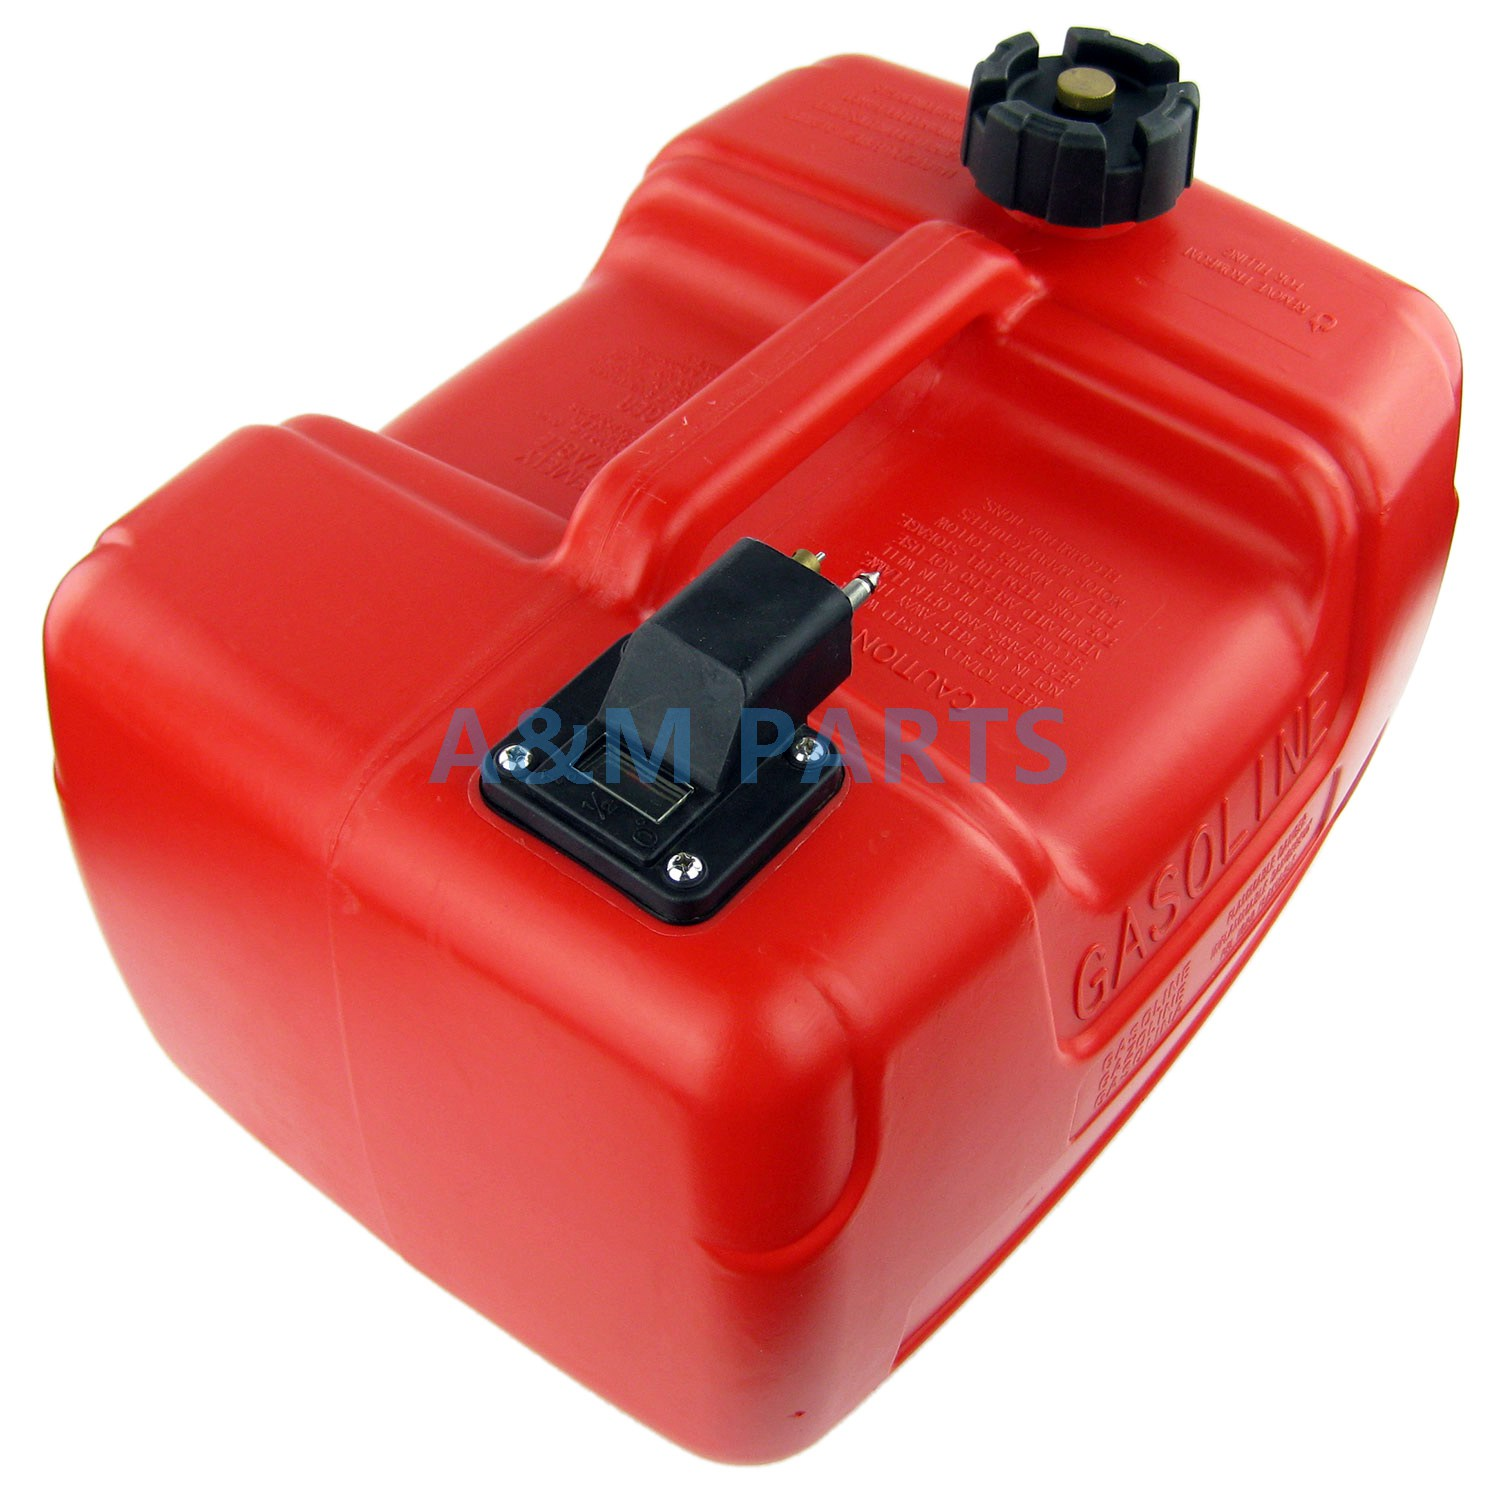 Portable boat fuel tank 3 2 gallon 12l marine outboard for Outboard motor gas tank hose